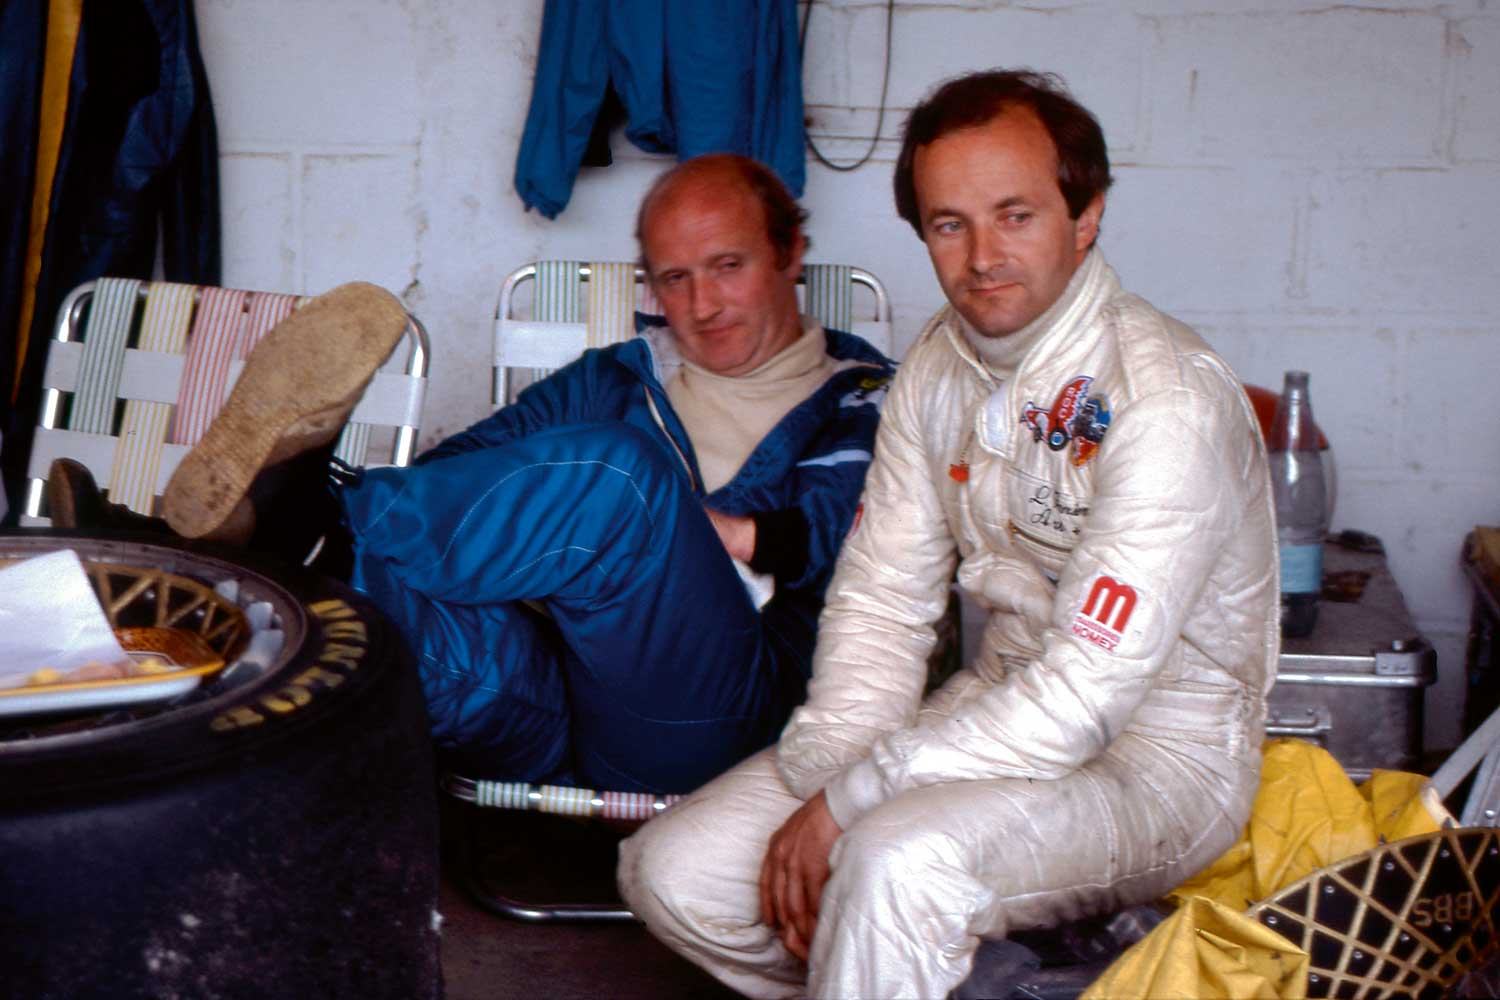 Ferrier's racing career would lead to a meeting with industrialist François Servanin, who eventually became President and main shareholder at LAURENT FERRIER watches; here we see the two gents at Le Mans in racing gear